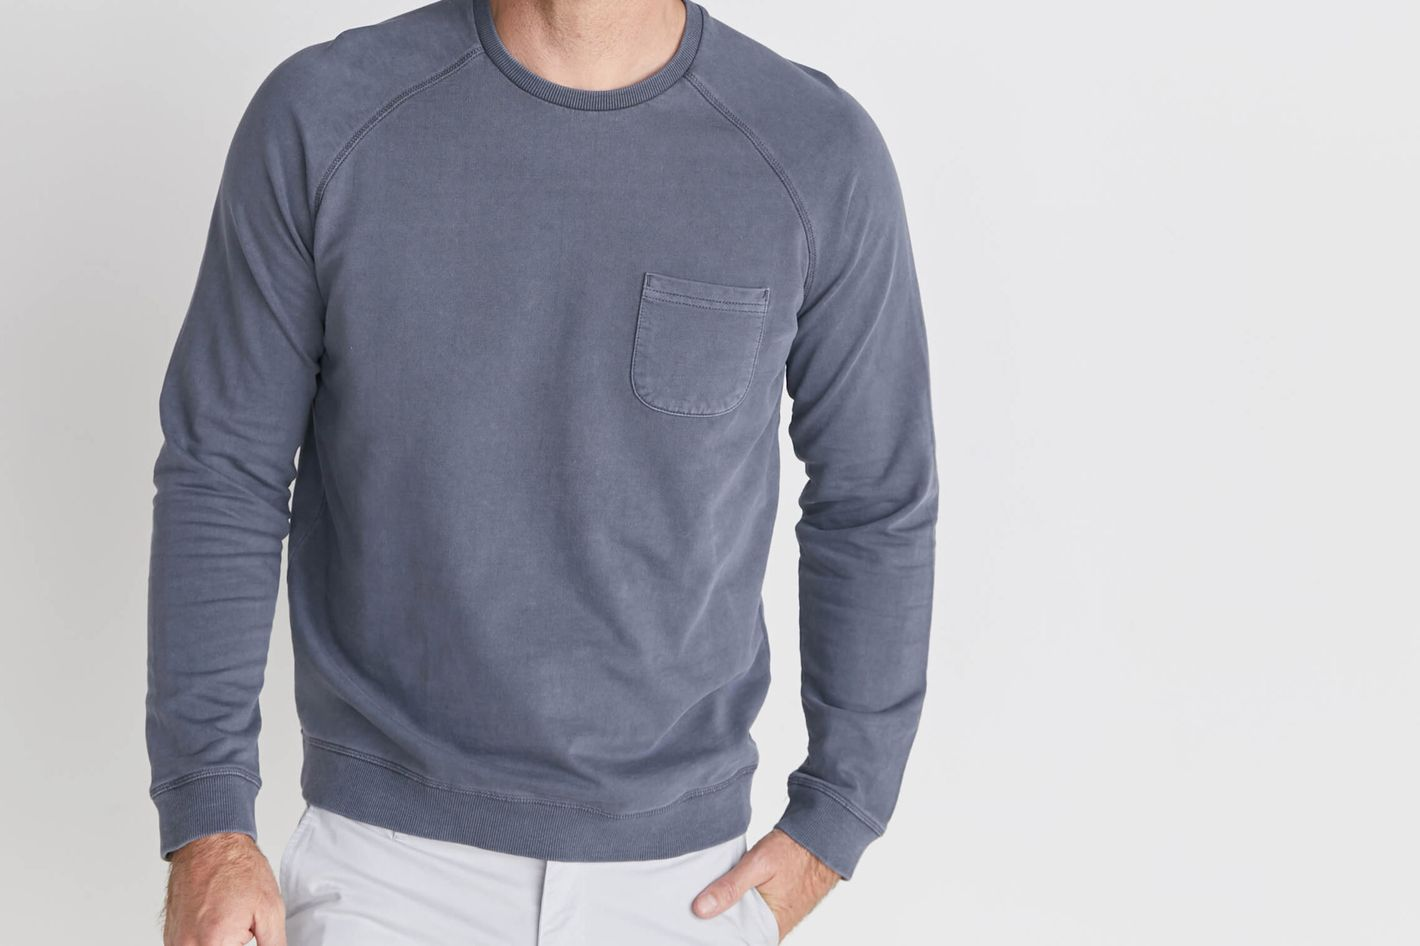 5b7f6ffacdf 10 Best Crewneck Sweatshirts for Men 2018